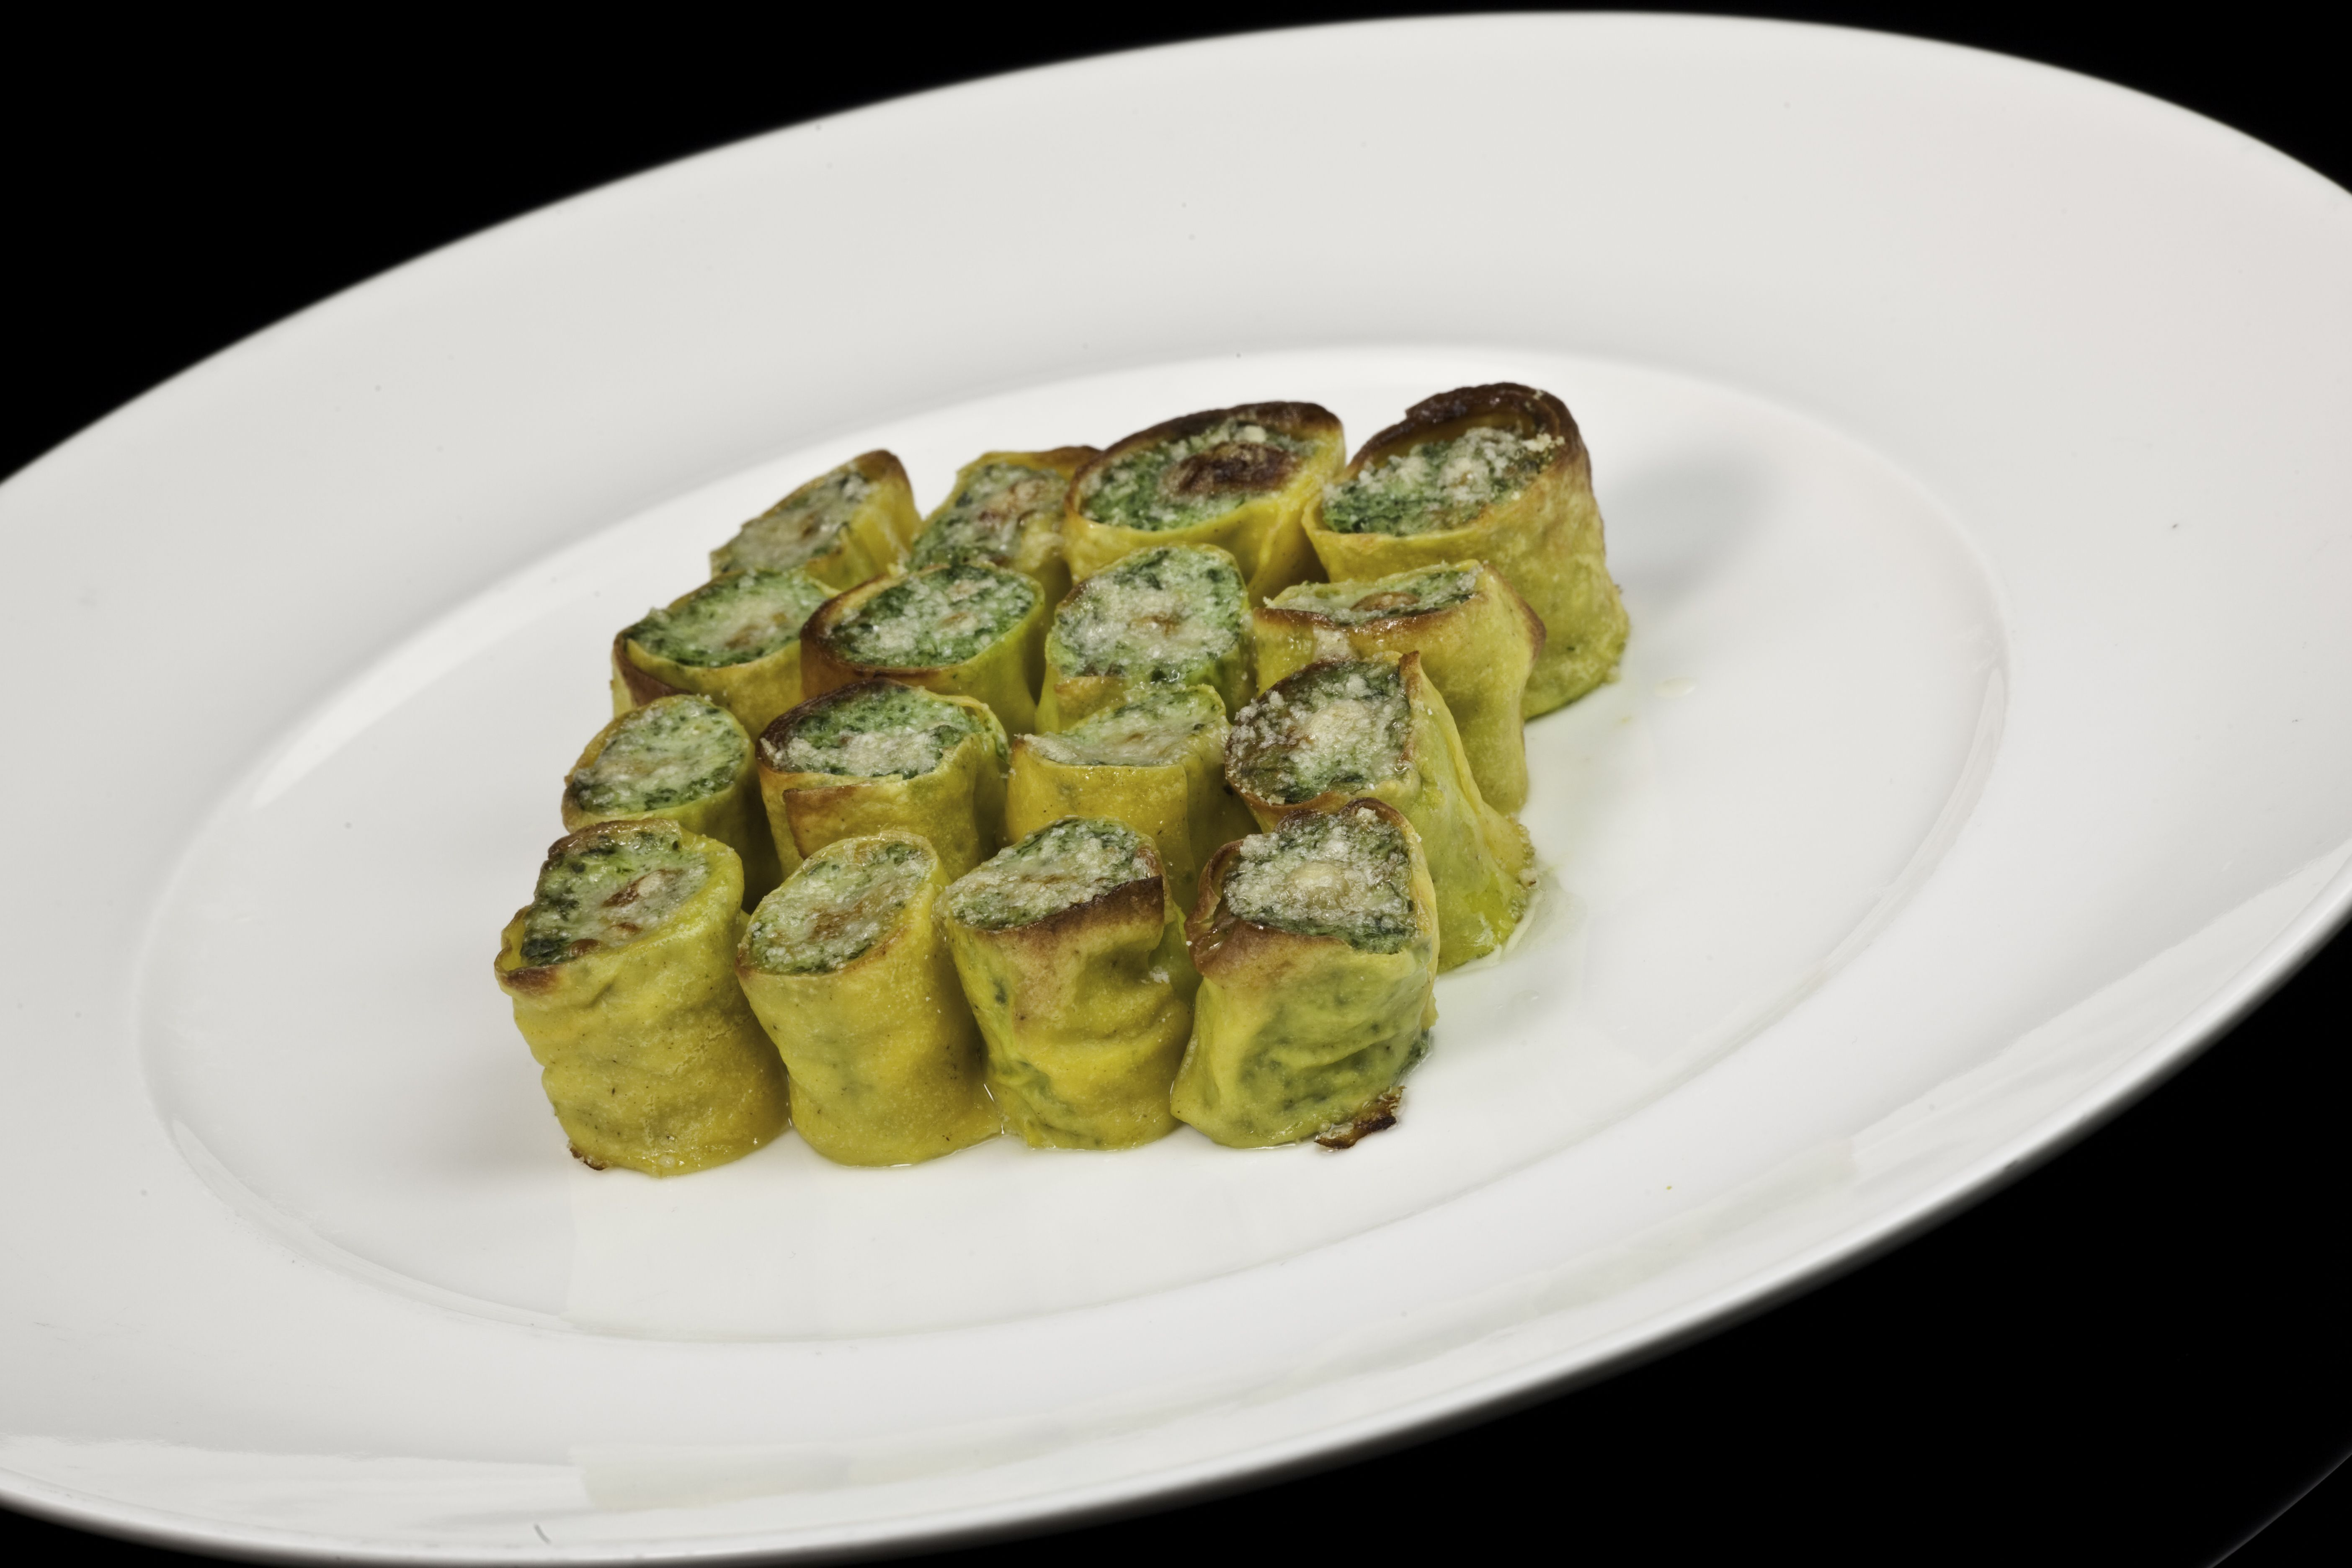 Rossini Cucina Italiana Ridgeland Menu Anelli Di Ricotta The Voracious Eye Food Photography Food